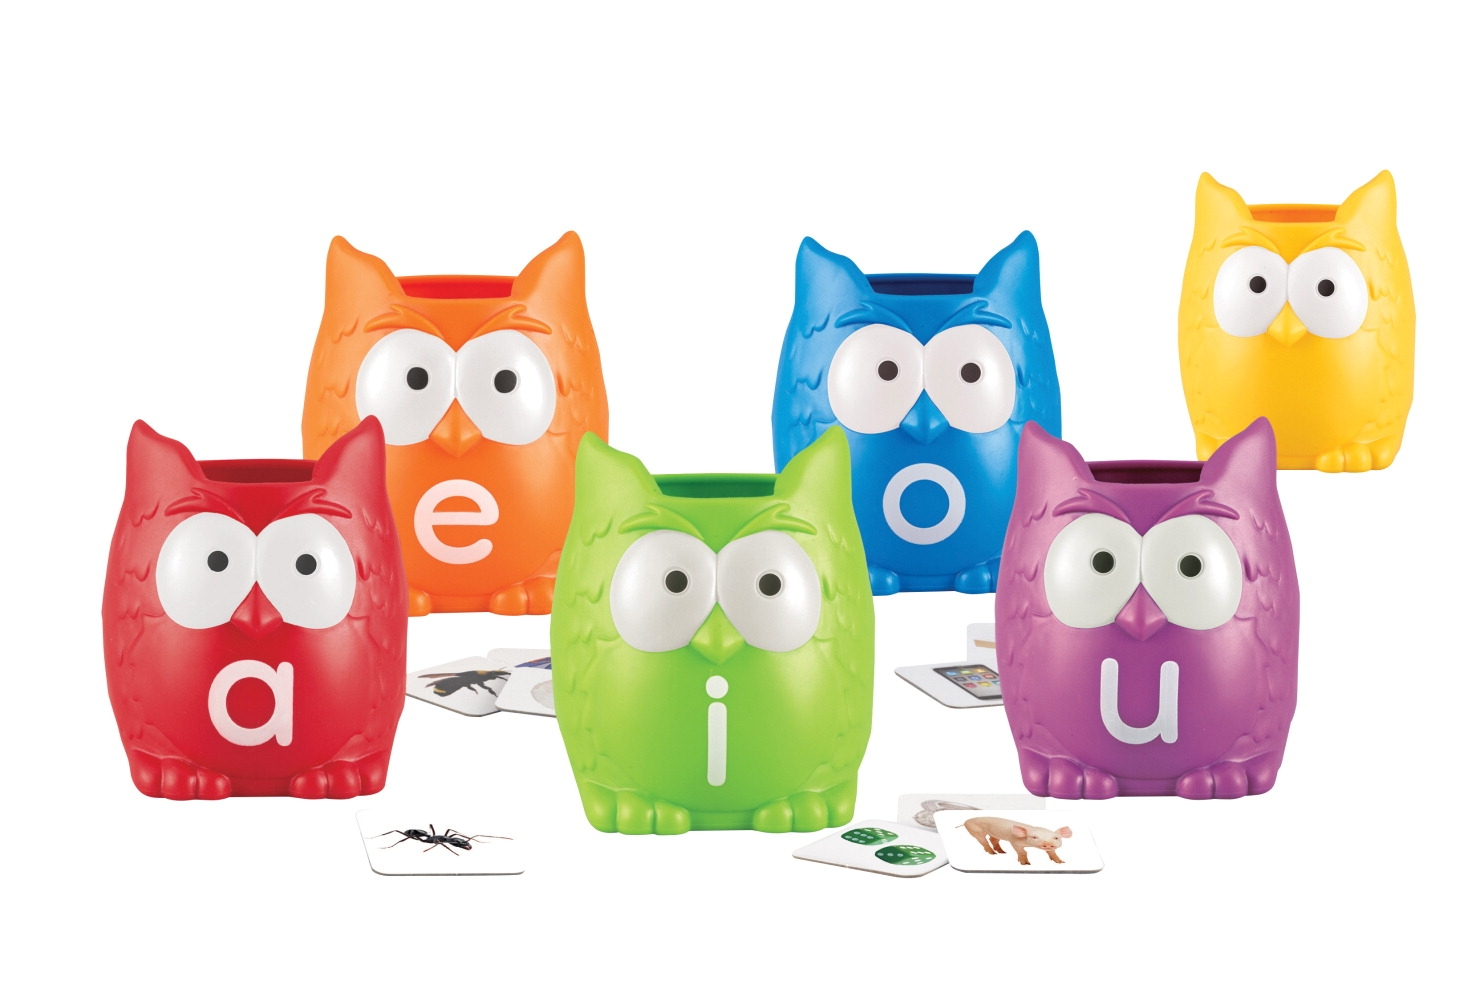 Toys Art & Drawing Toys Art Resources - 1465344 - Learning Resources Vowel Owls Sorting Set; 107 Pieces 1465344